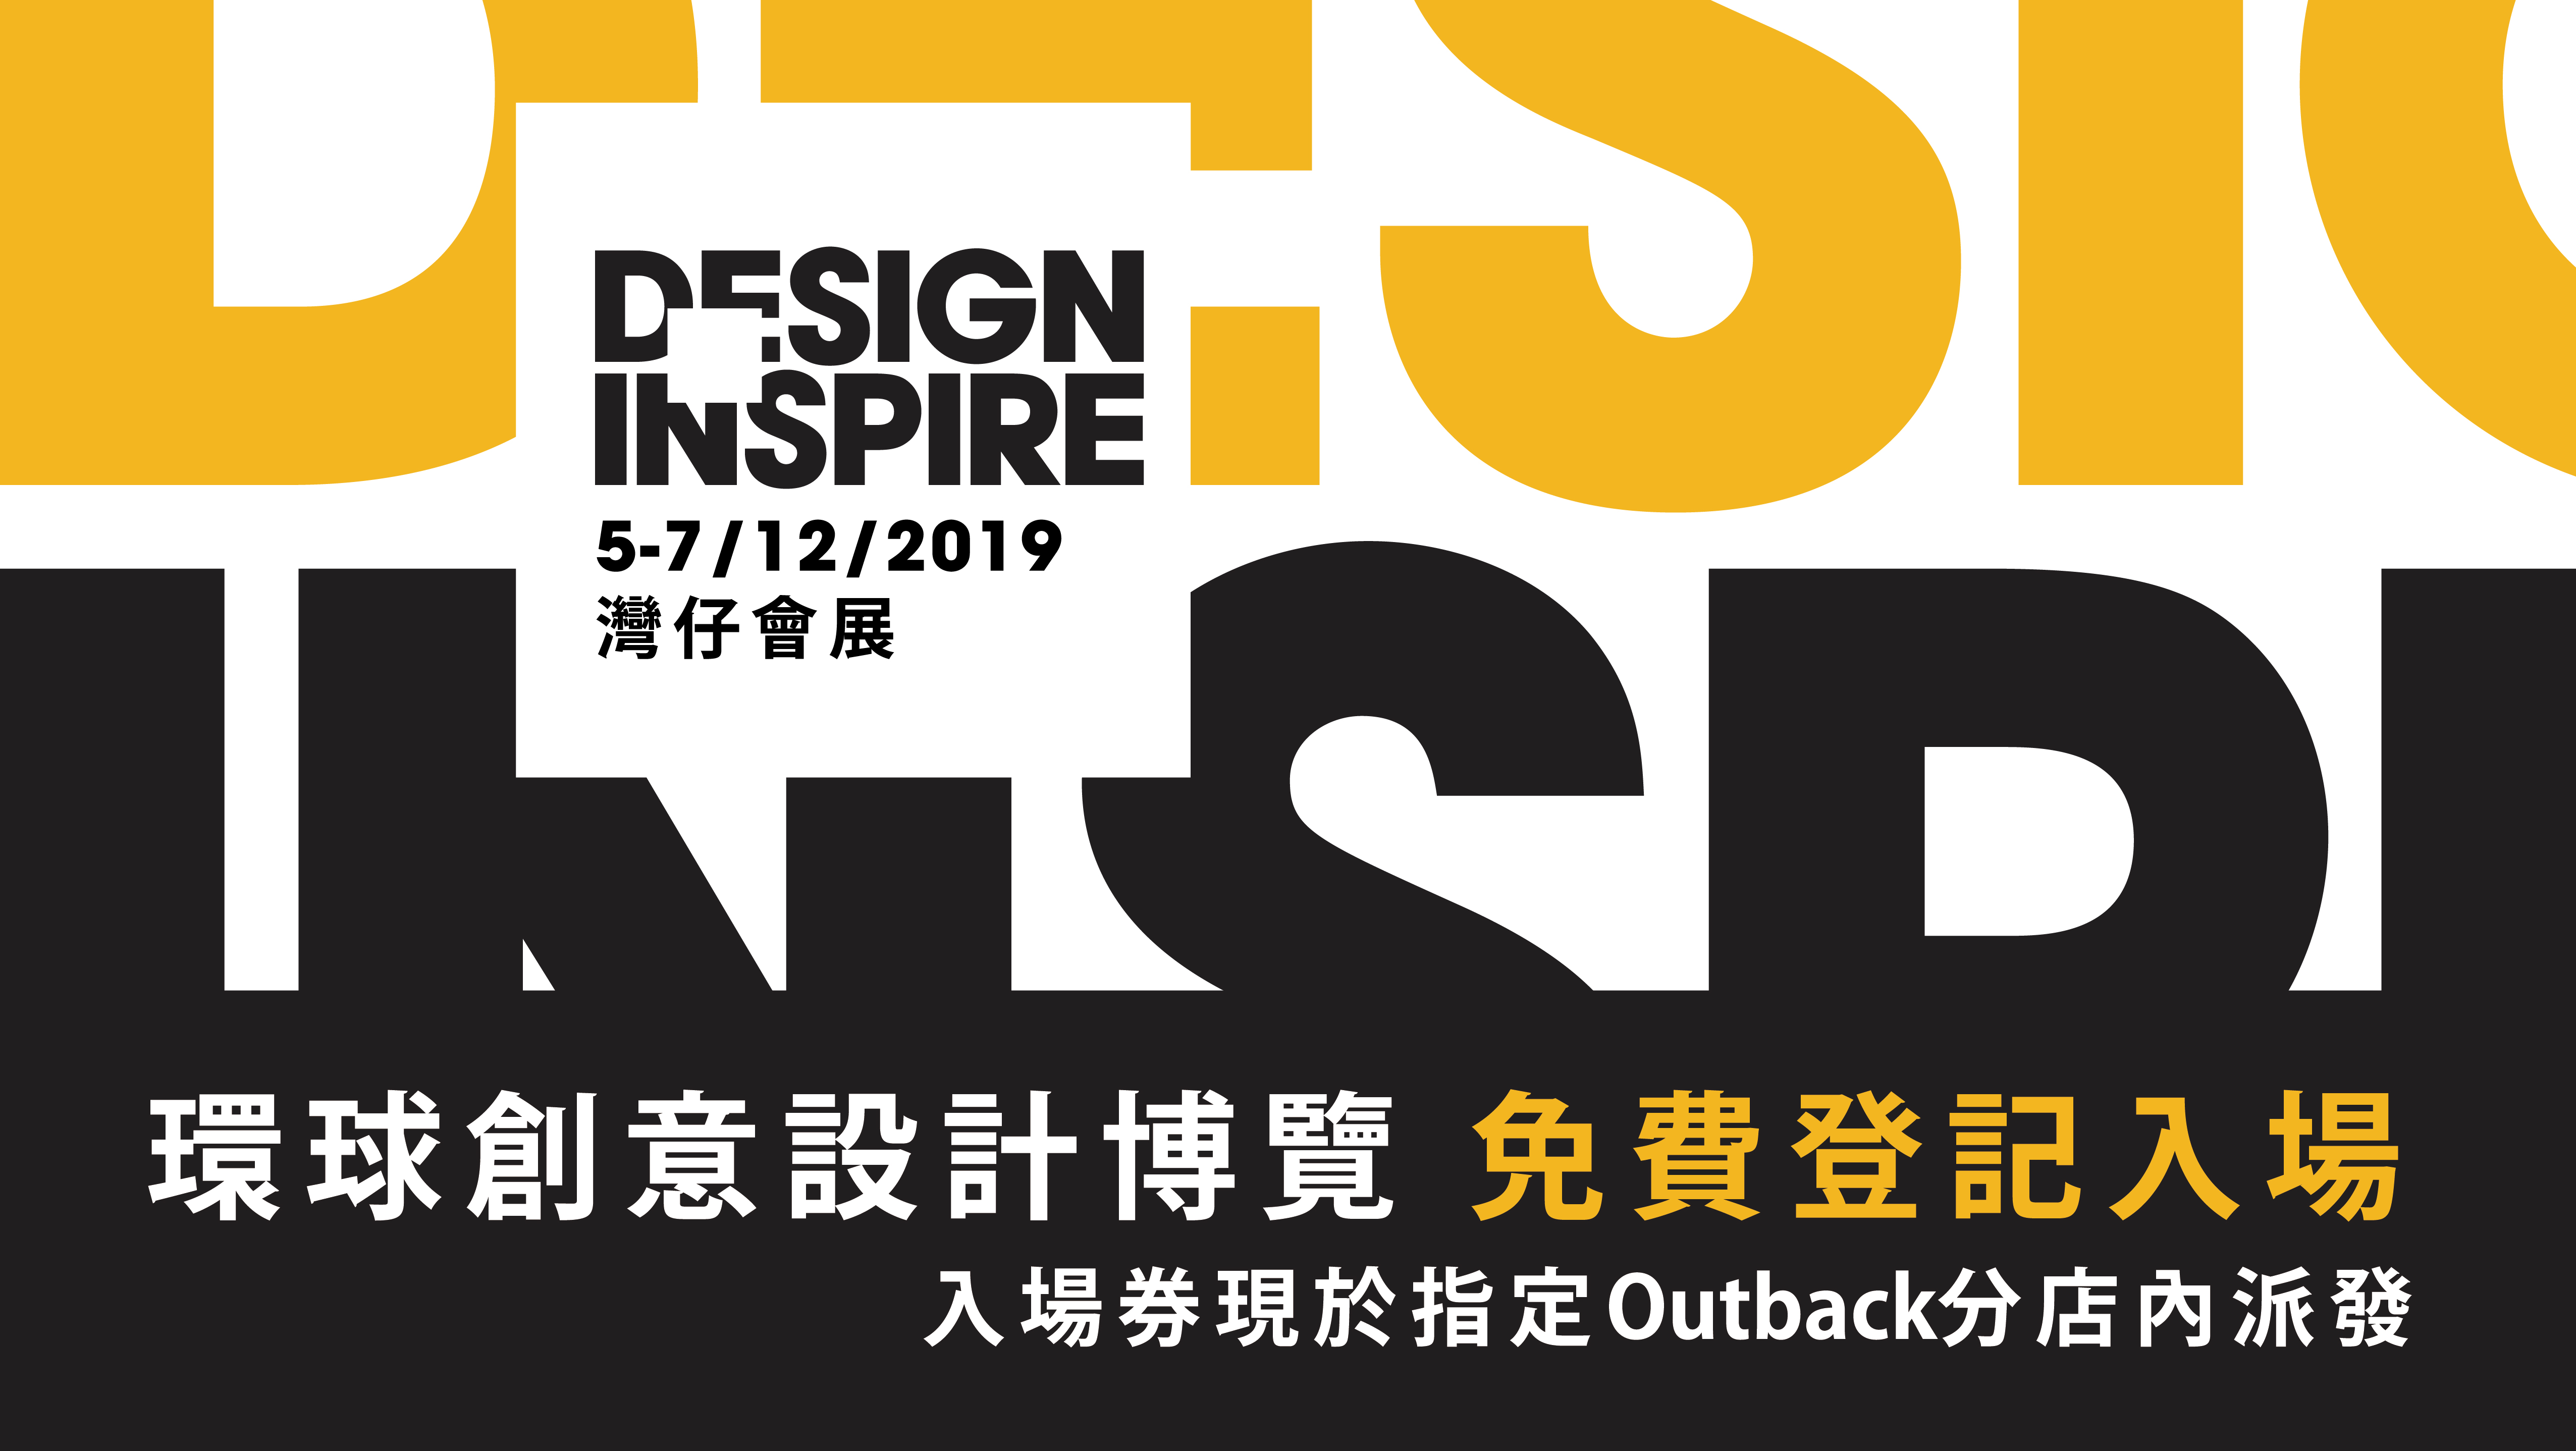 DesignInspire 2019 - Exhibition of design and innovation